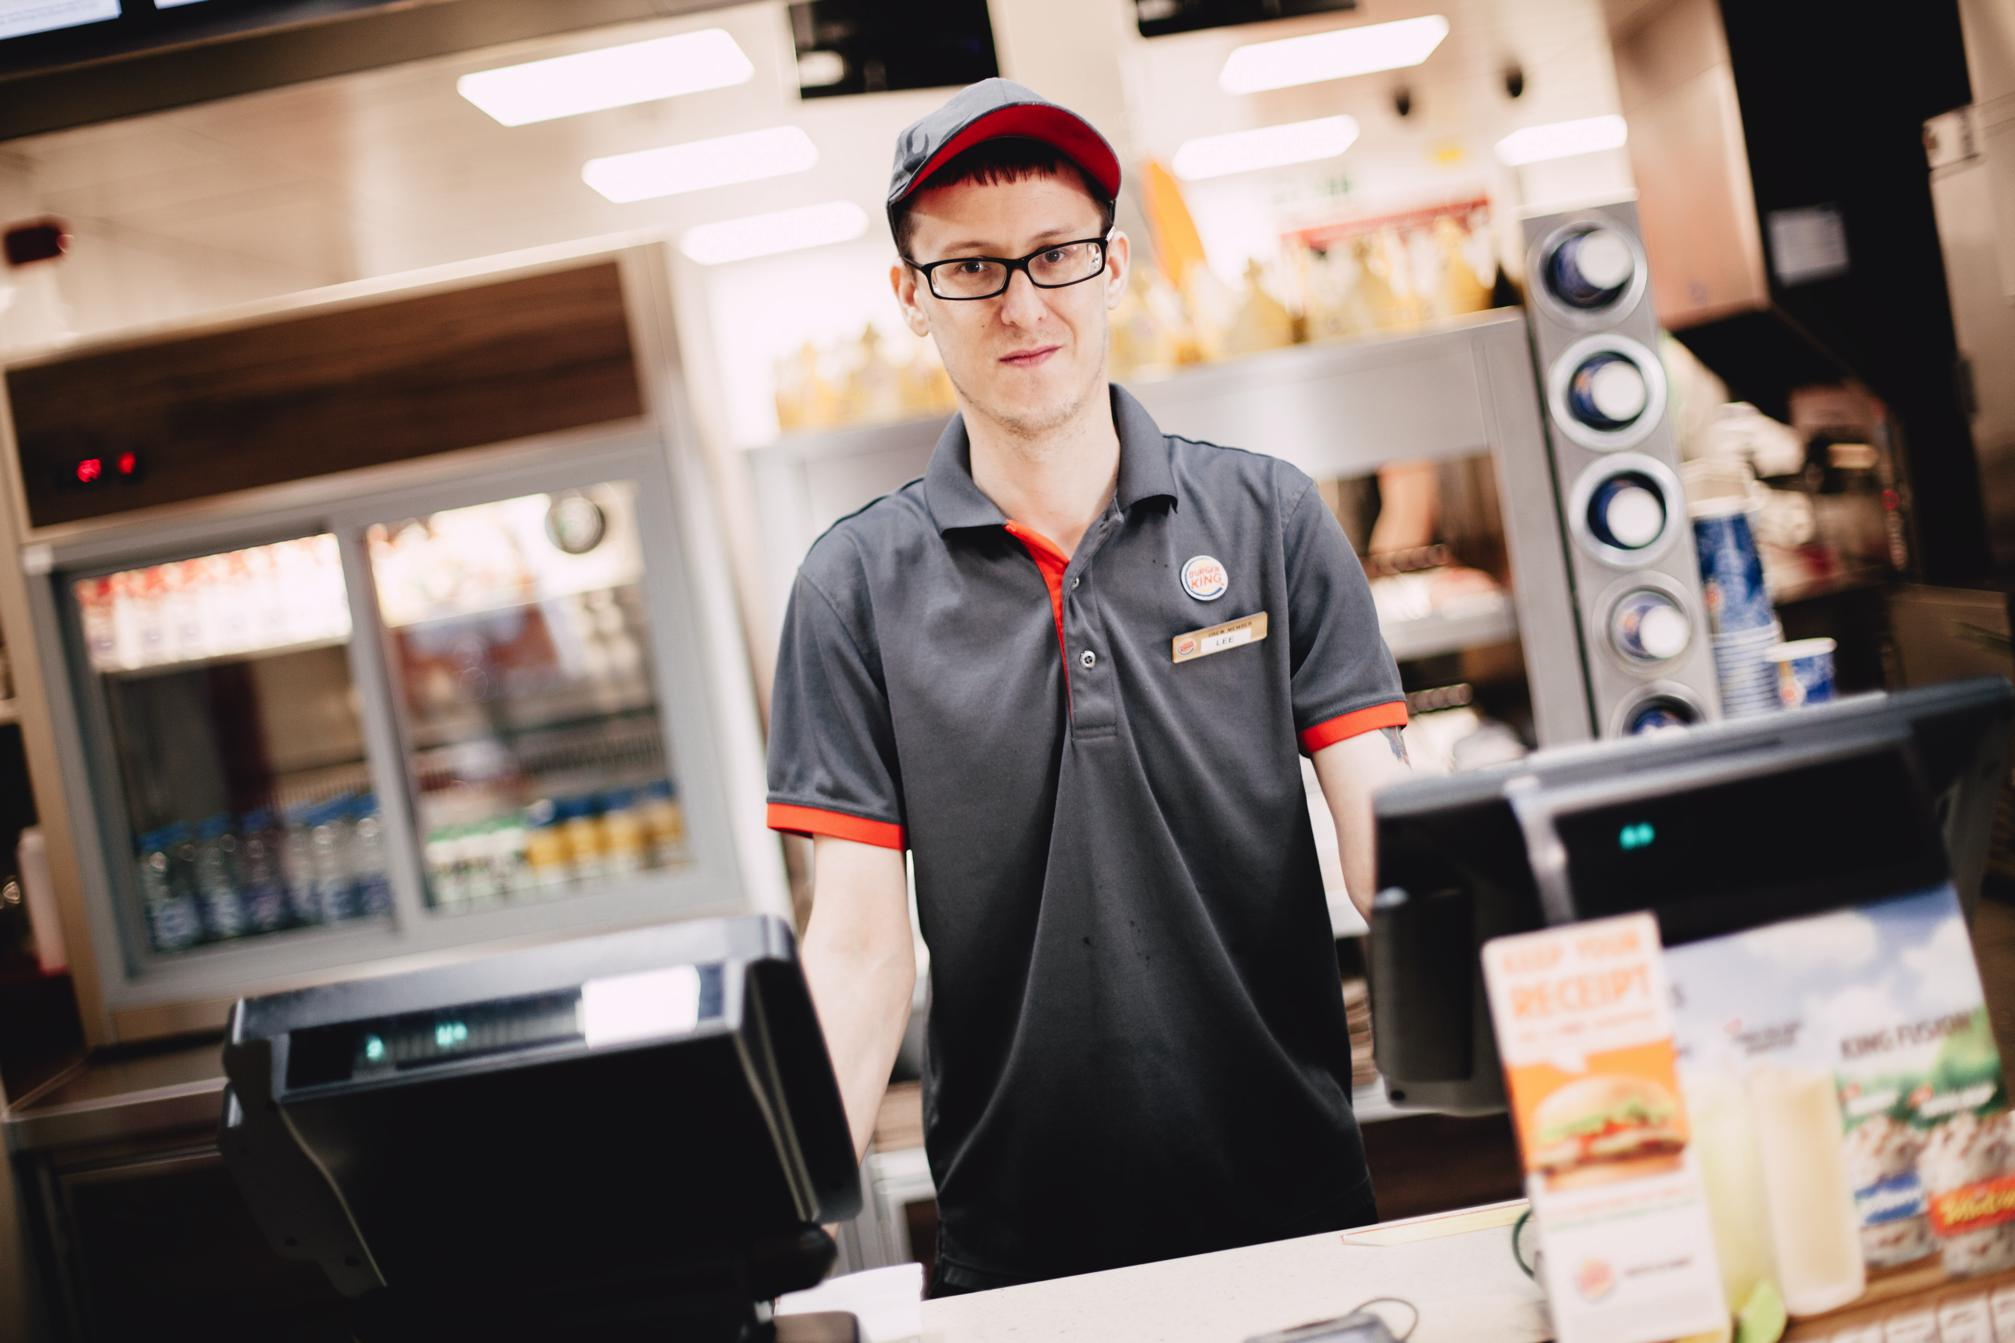 burger king customer services Burger king is a restaurant chain with its online and retail locations read on to find ways to get in touch with the customer service department of burger king.